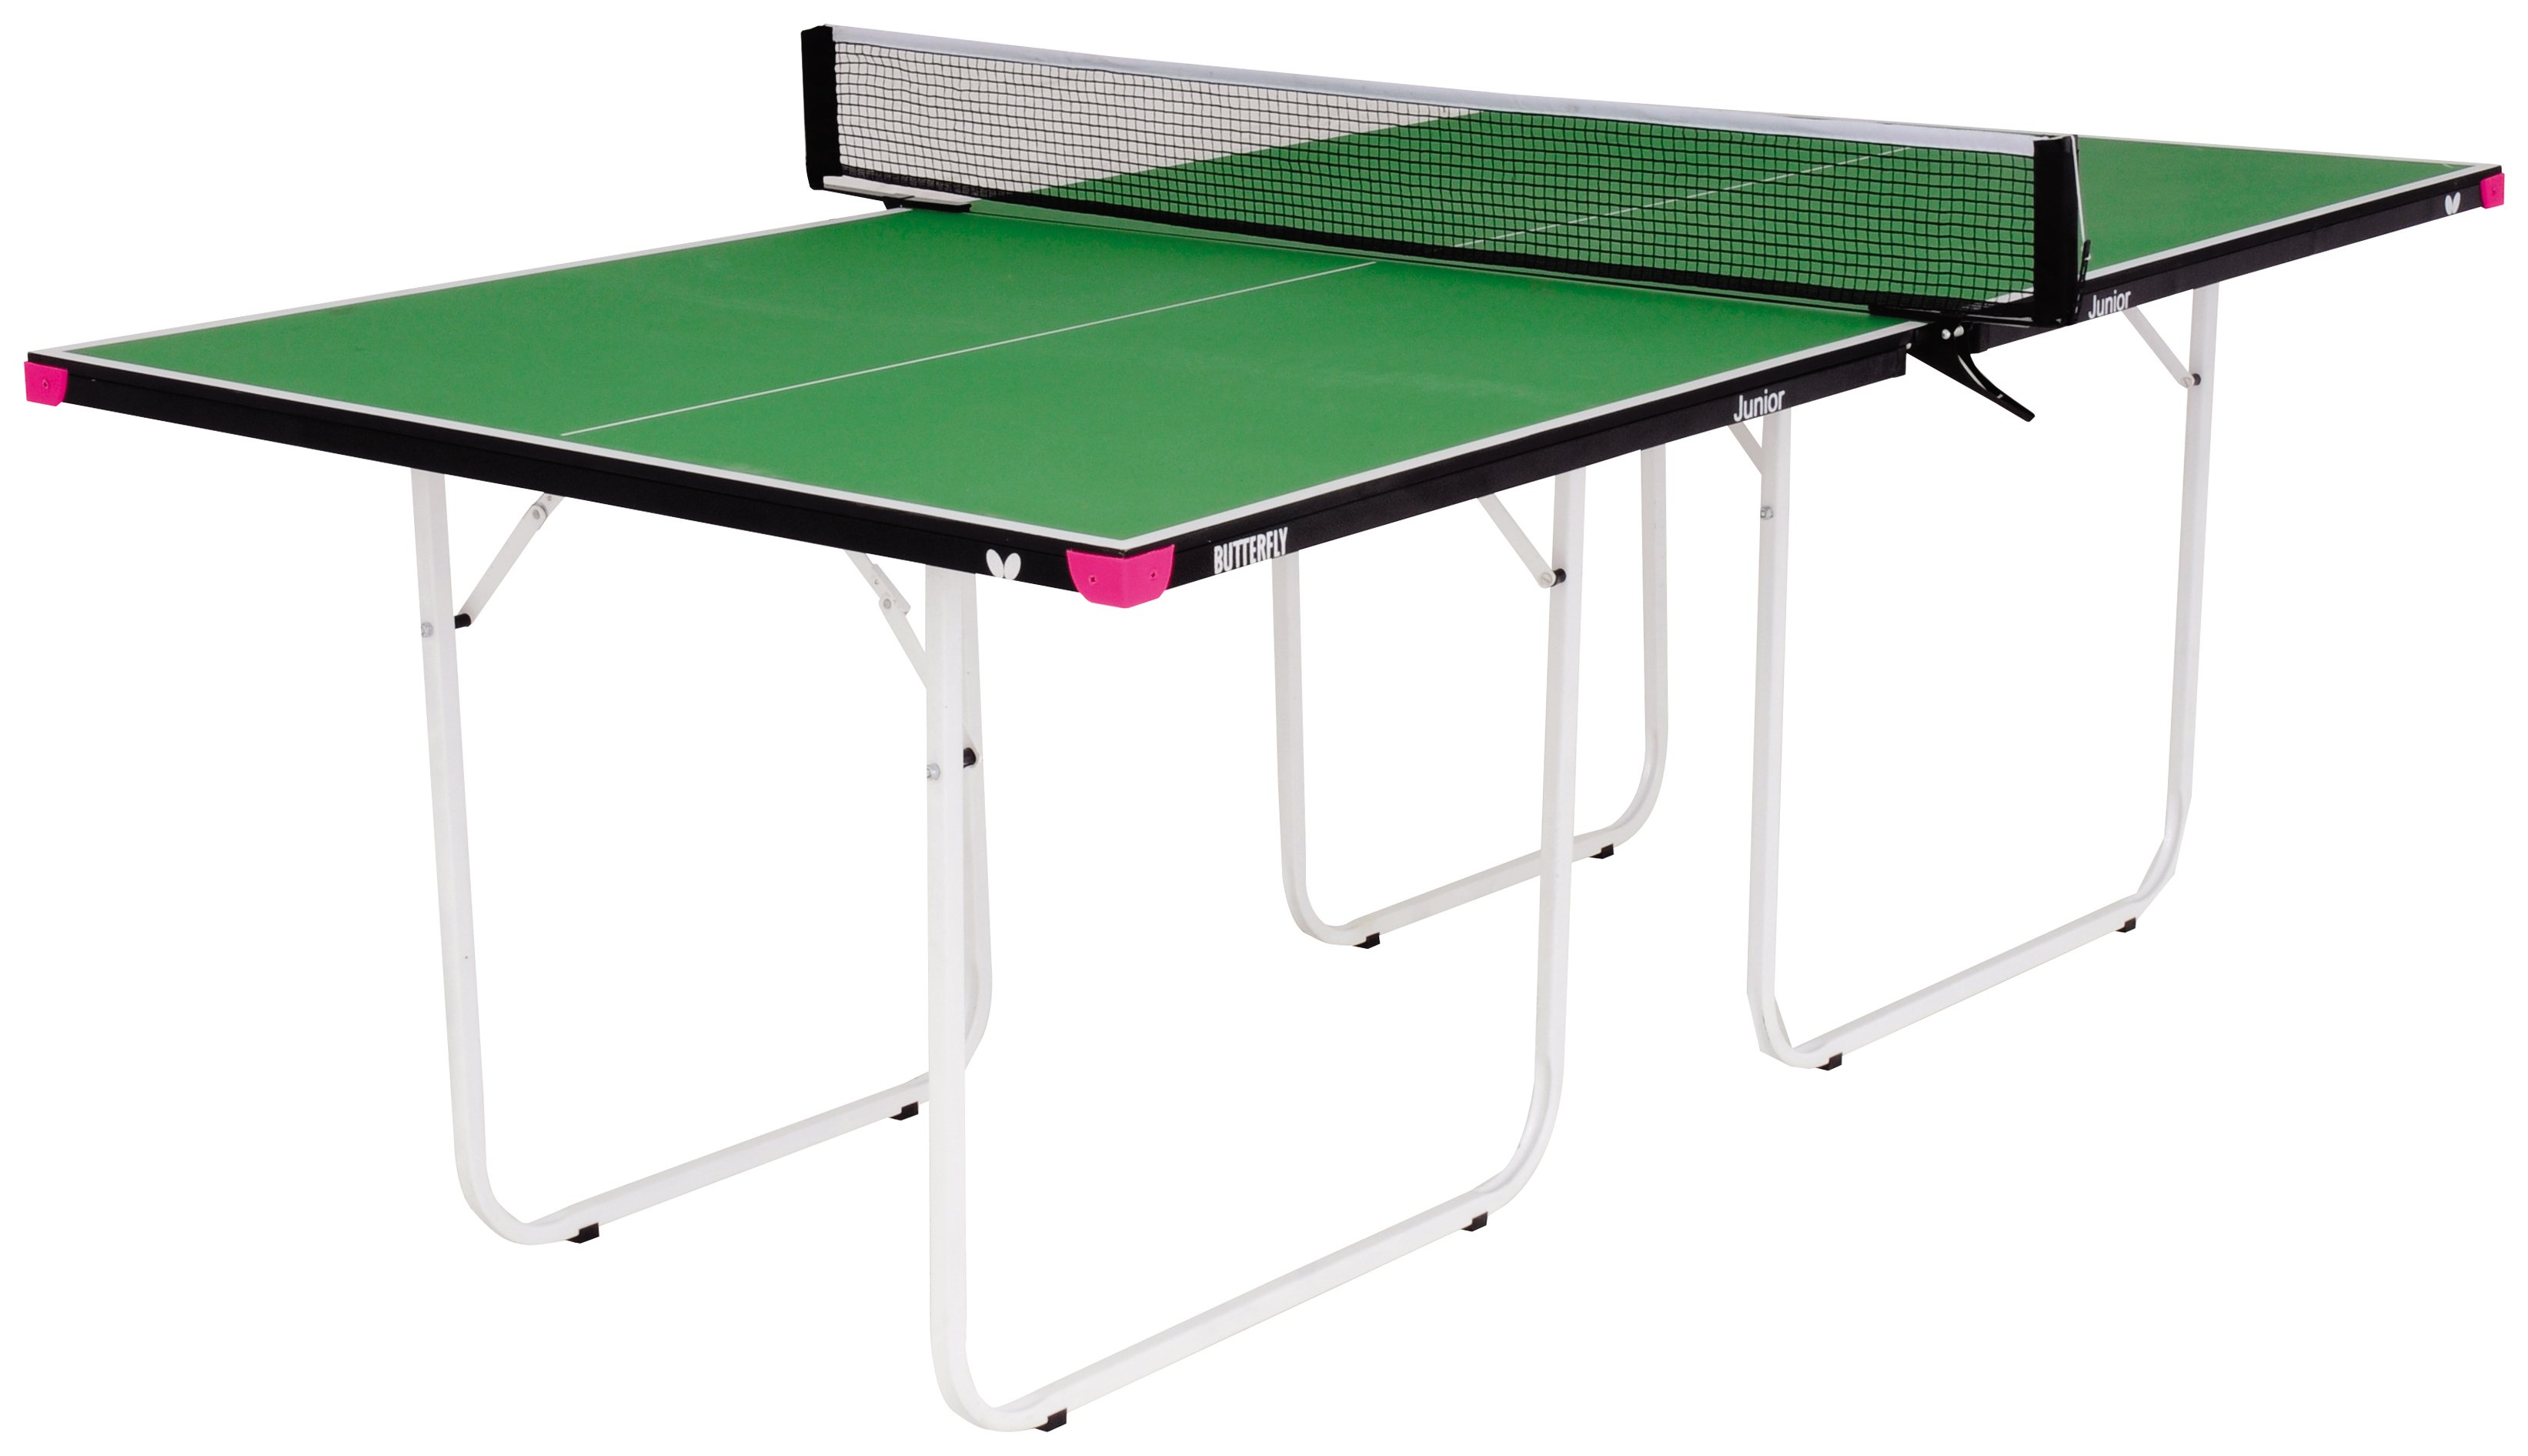 Image of Butterfly - Junior Three Quarter Table Tennis Table